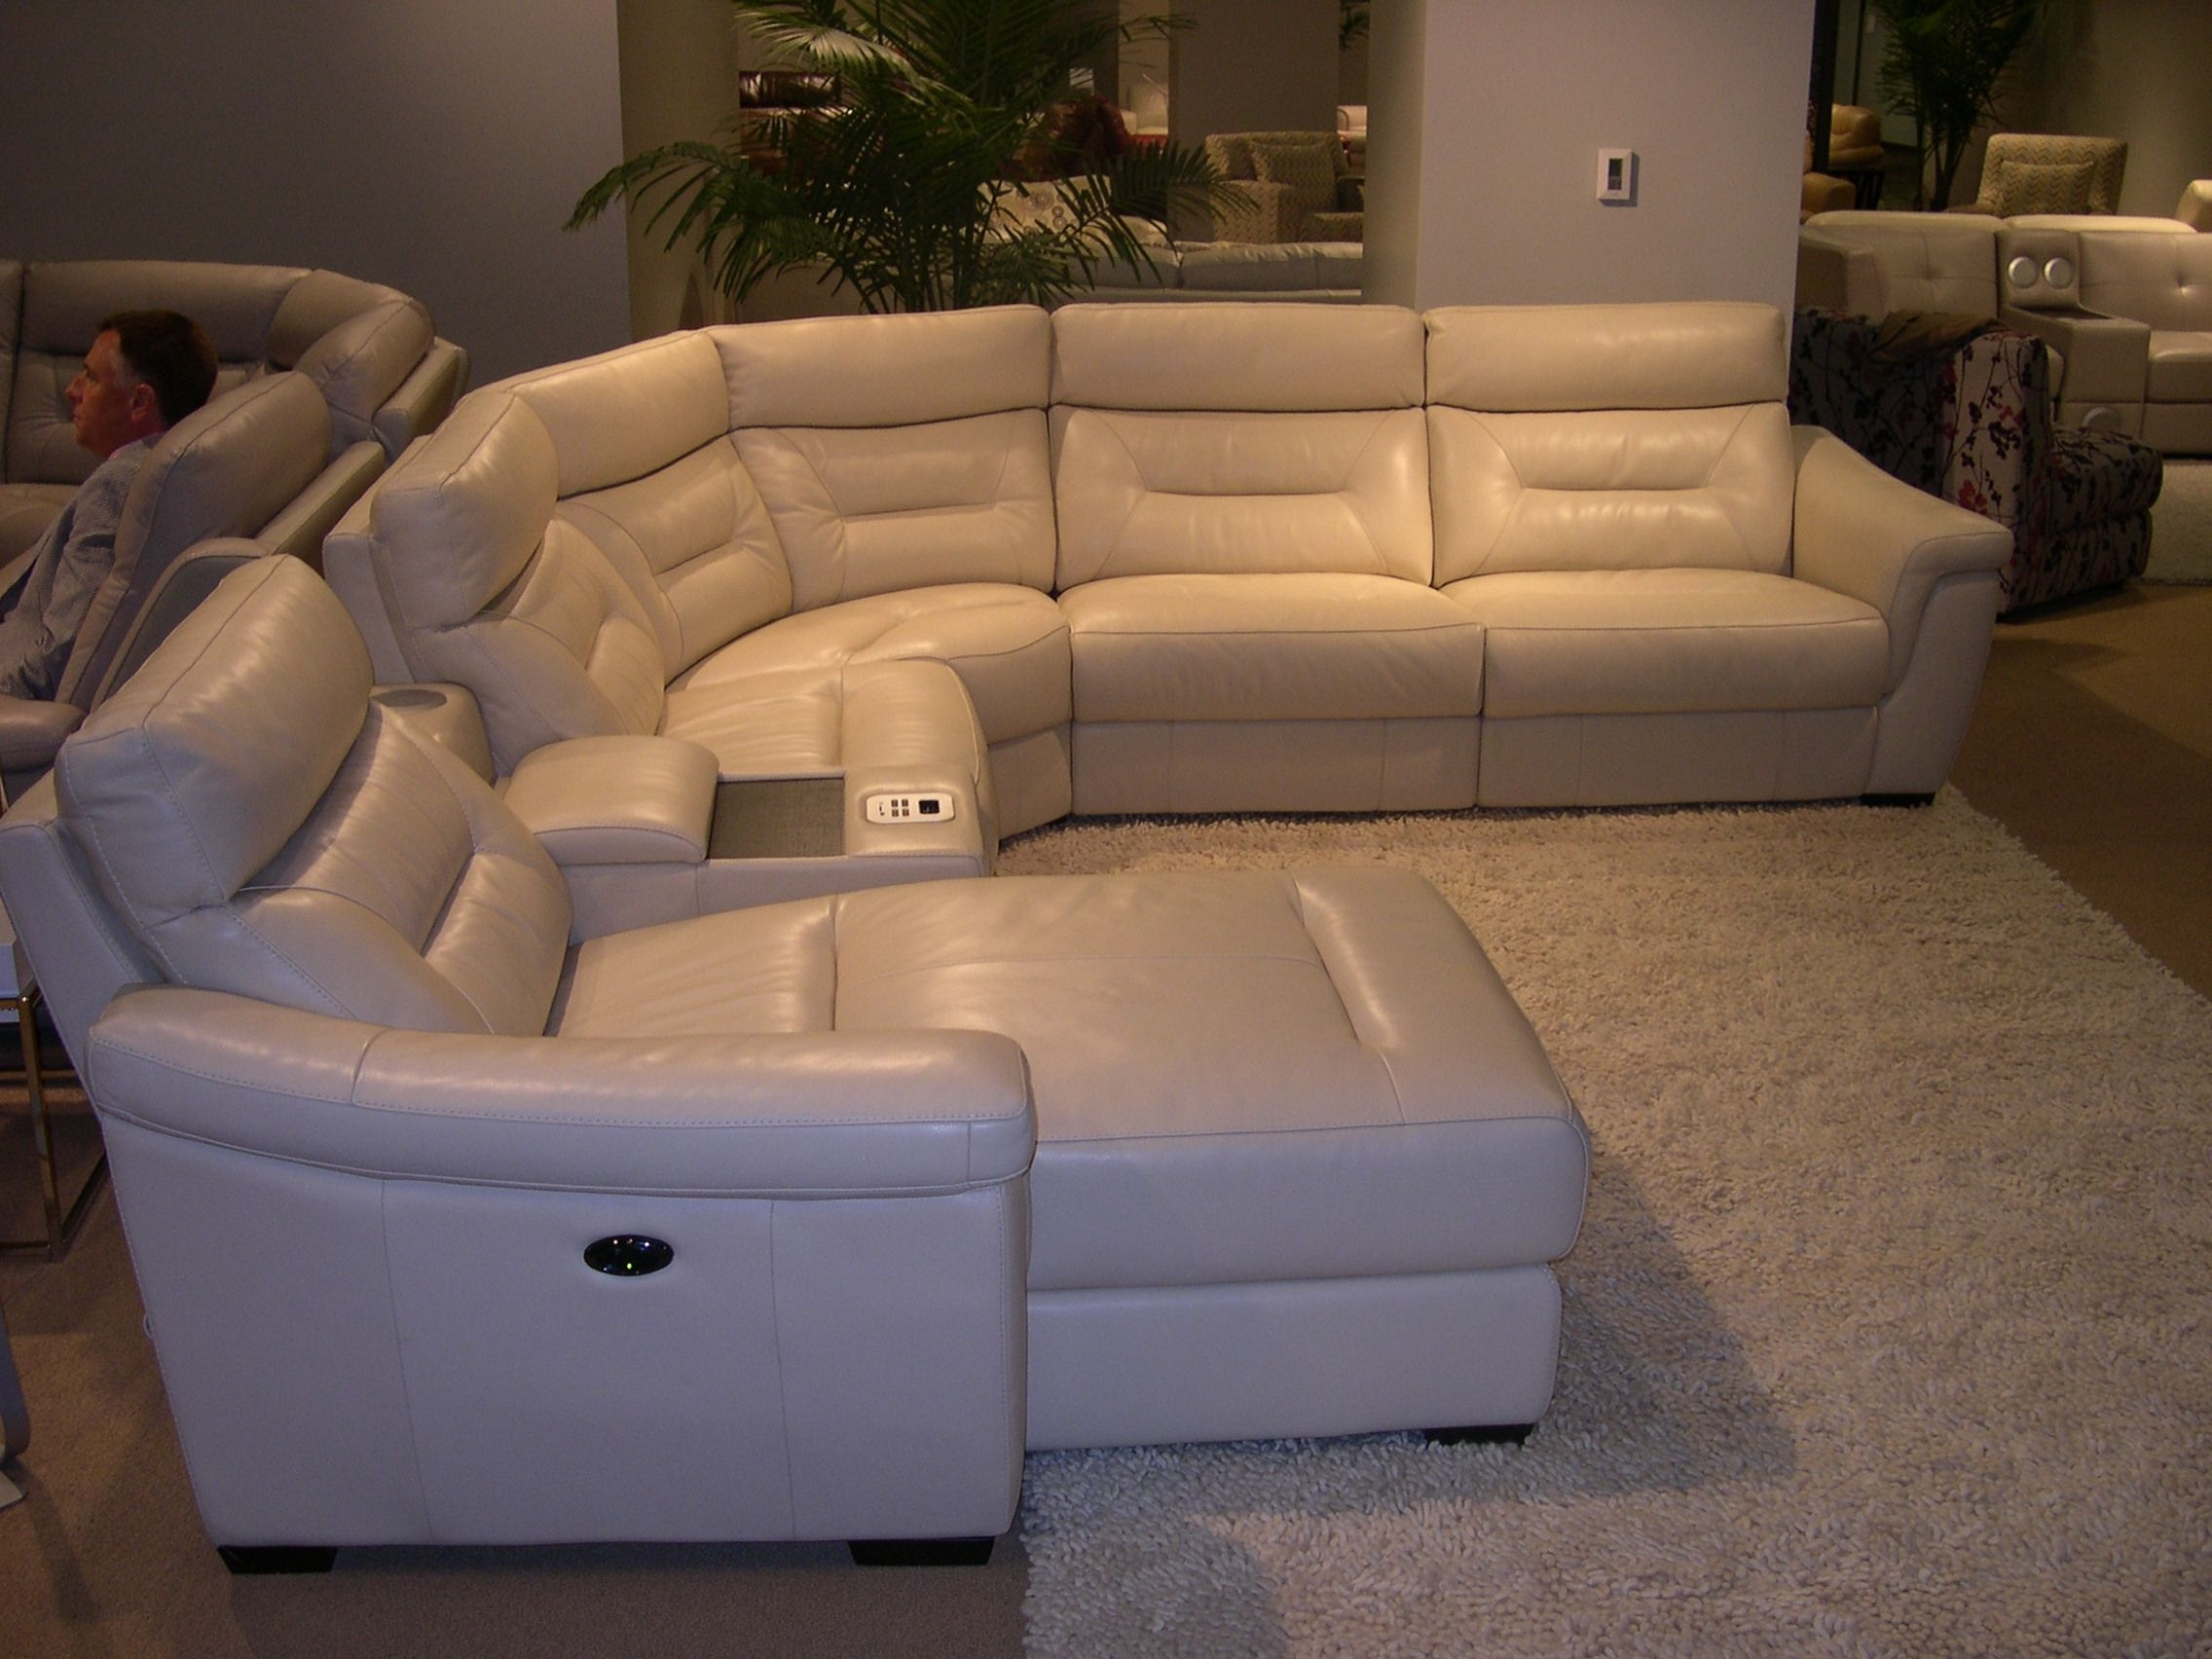 Fashionable Htl Leather Sectional – Adjustable Headrests (View 6 of 20)